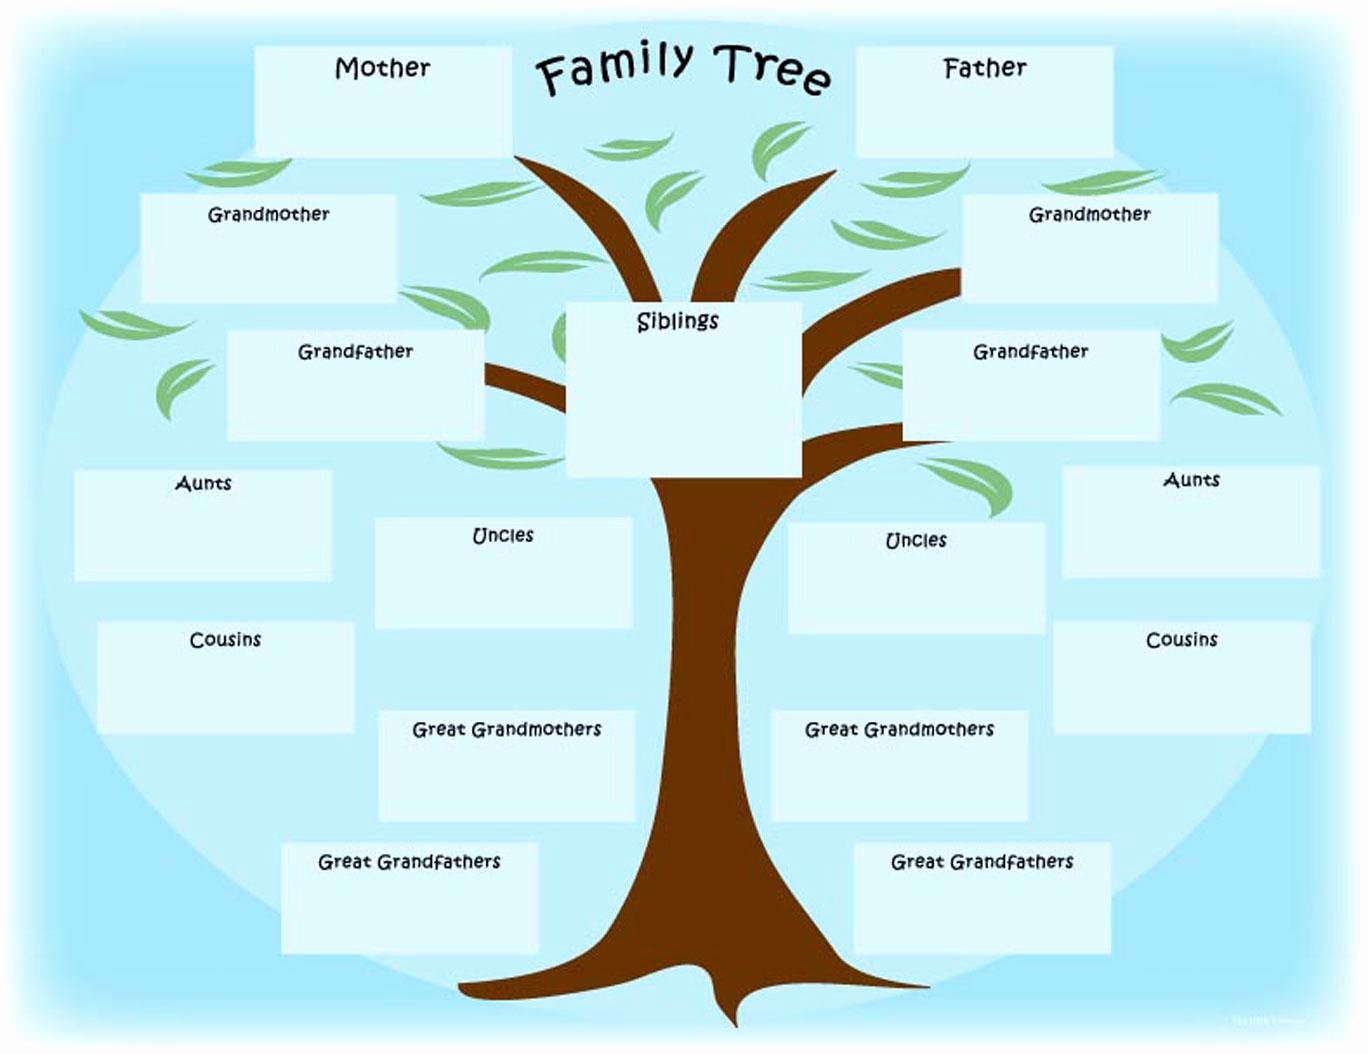 Free Family Tree Template Excel Beautiful 15 Free Family Tree Template Chart & Diagram In Pdf